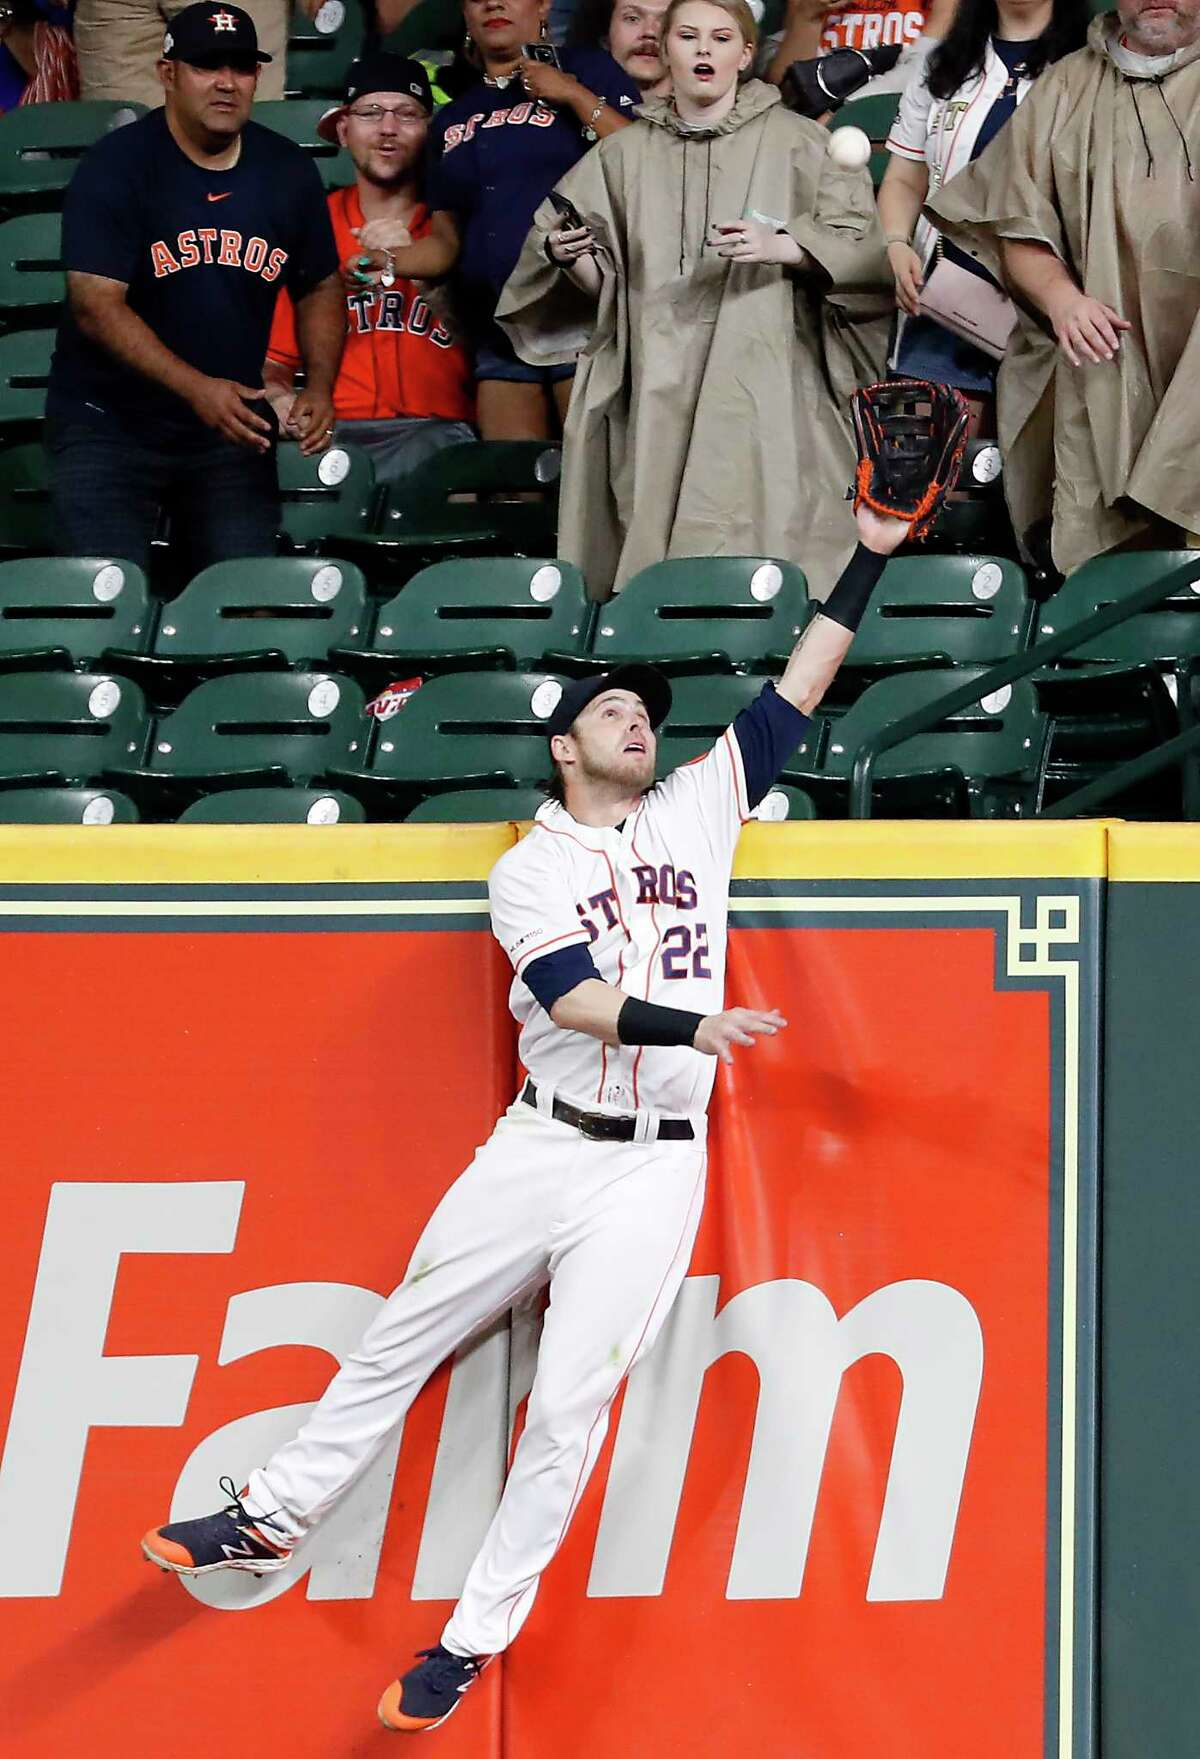 Houston Astros Josh Reddick (22) leaps to a make a catch at the wall of the bat of Texas Rangers Hunter Pence during the ninth inning of a major league baseball game at Minute Maid Park on Thursday, May 9, 2019, in Houston. Pence hit the ball to deep right with runners on first and third. Reddick's catch stopped the Rangers from scoring.